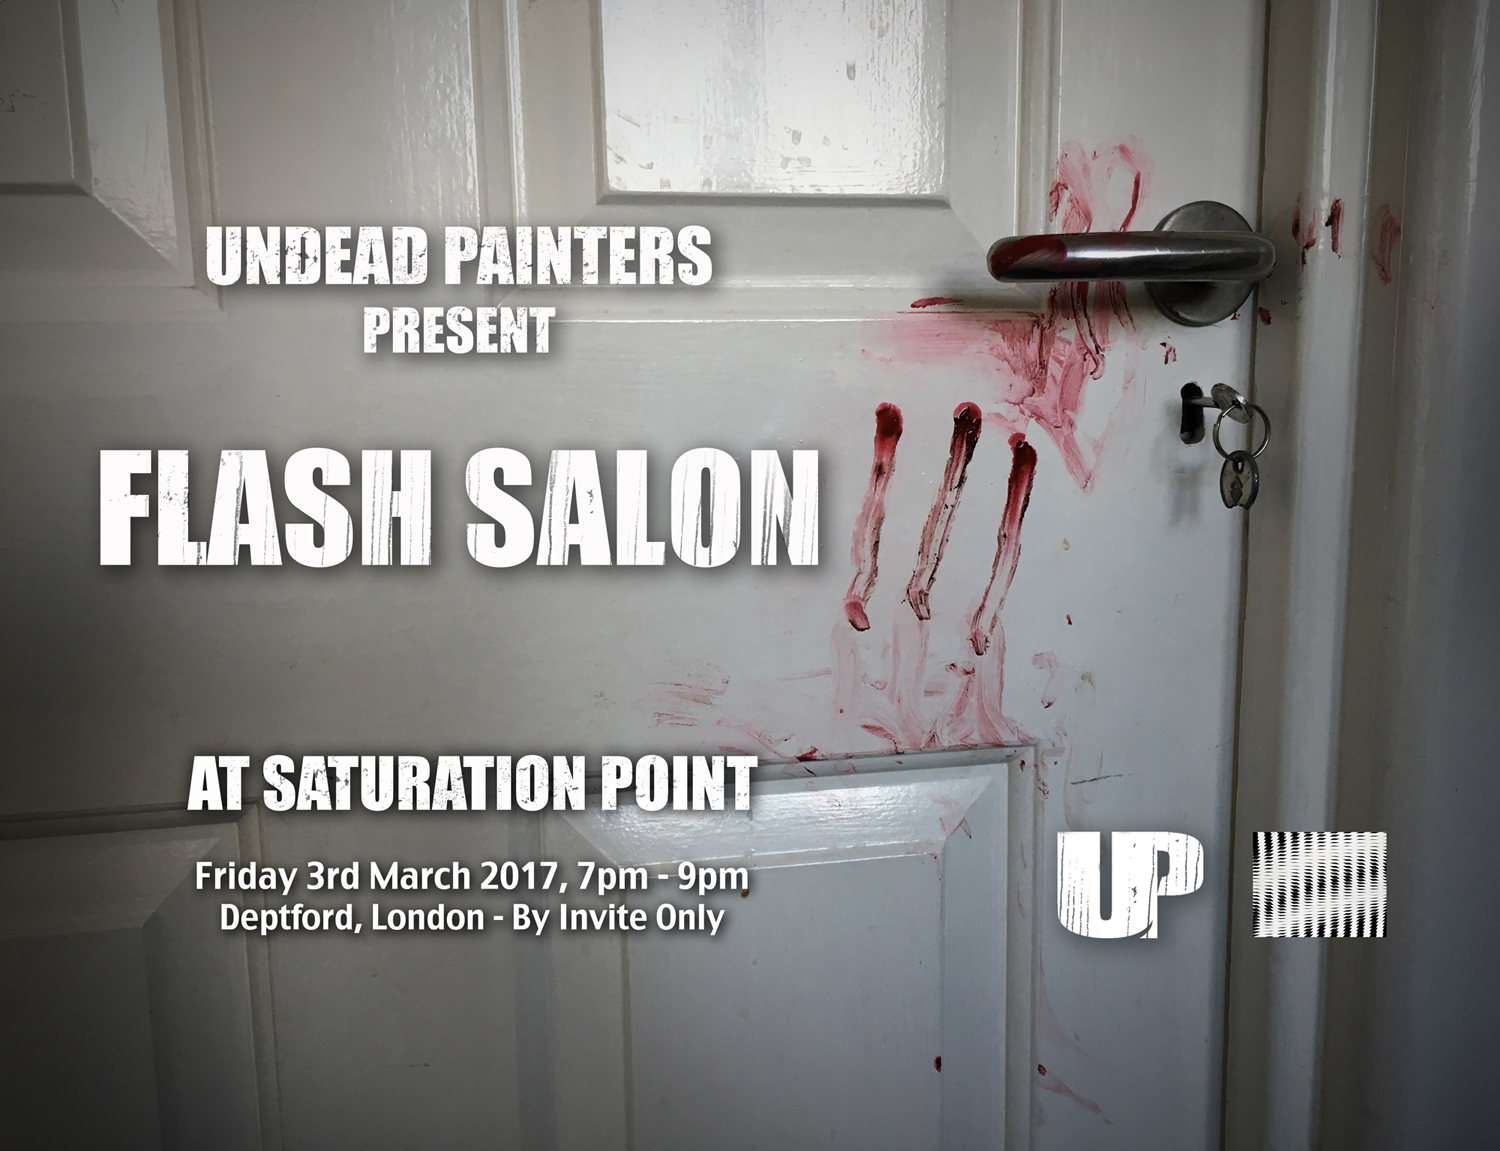 undead-painters-flash-salon-iii-poster